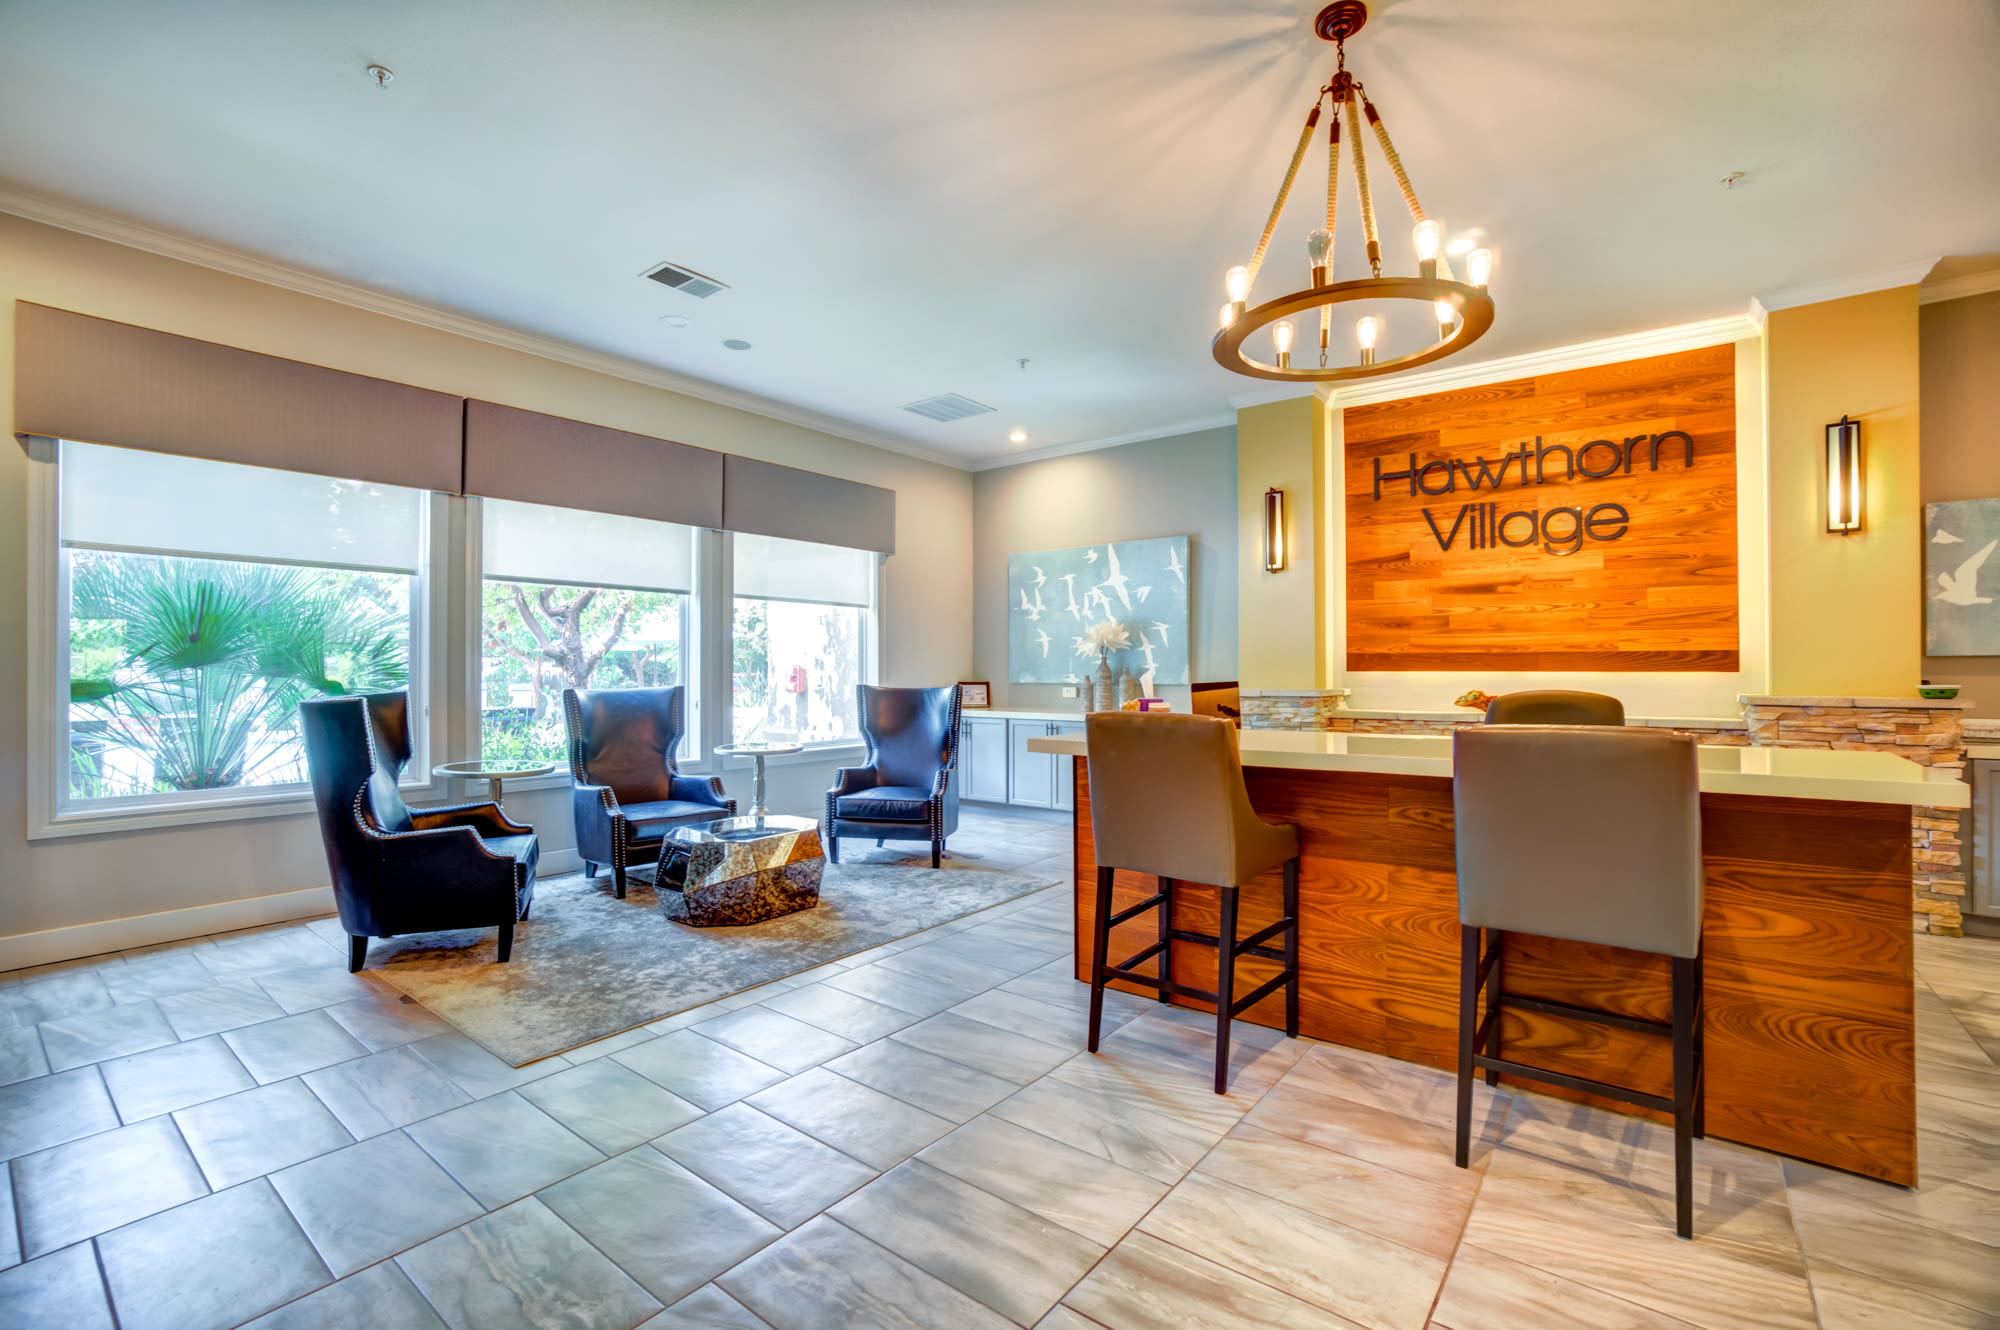 interior leasing office at Hawthorn Village Apartments in Napa,CA